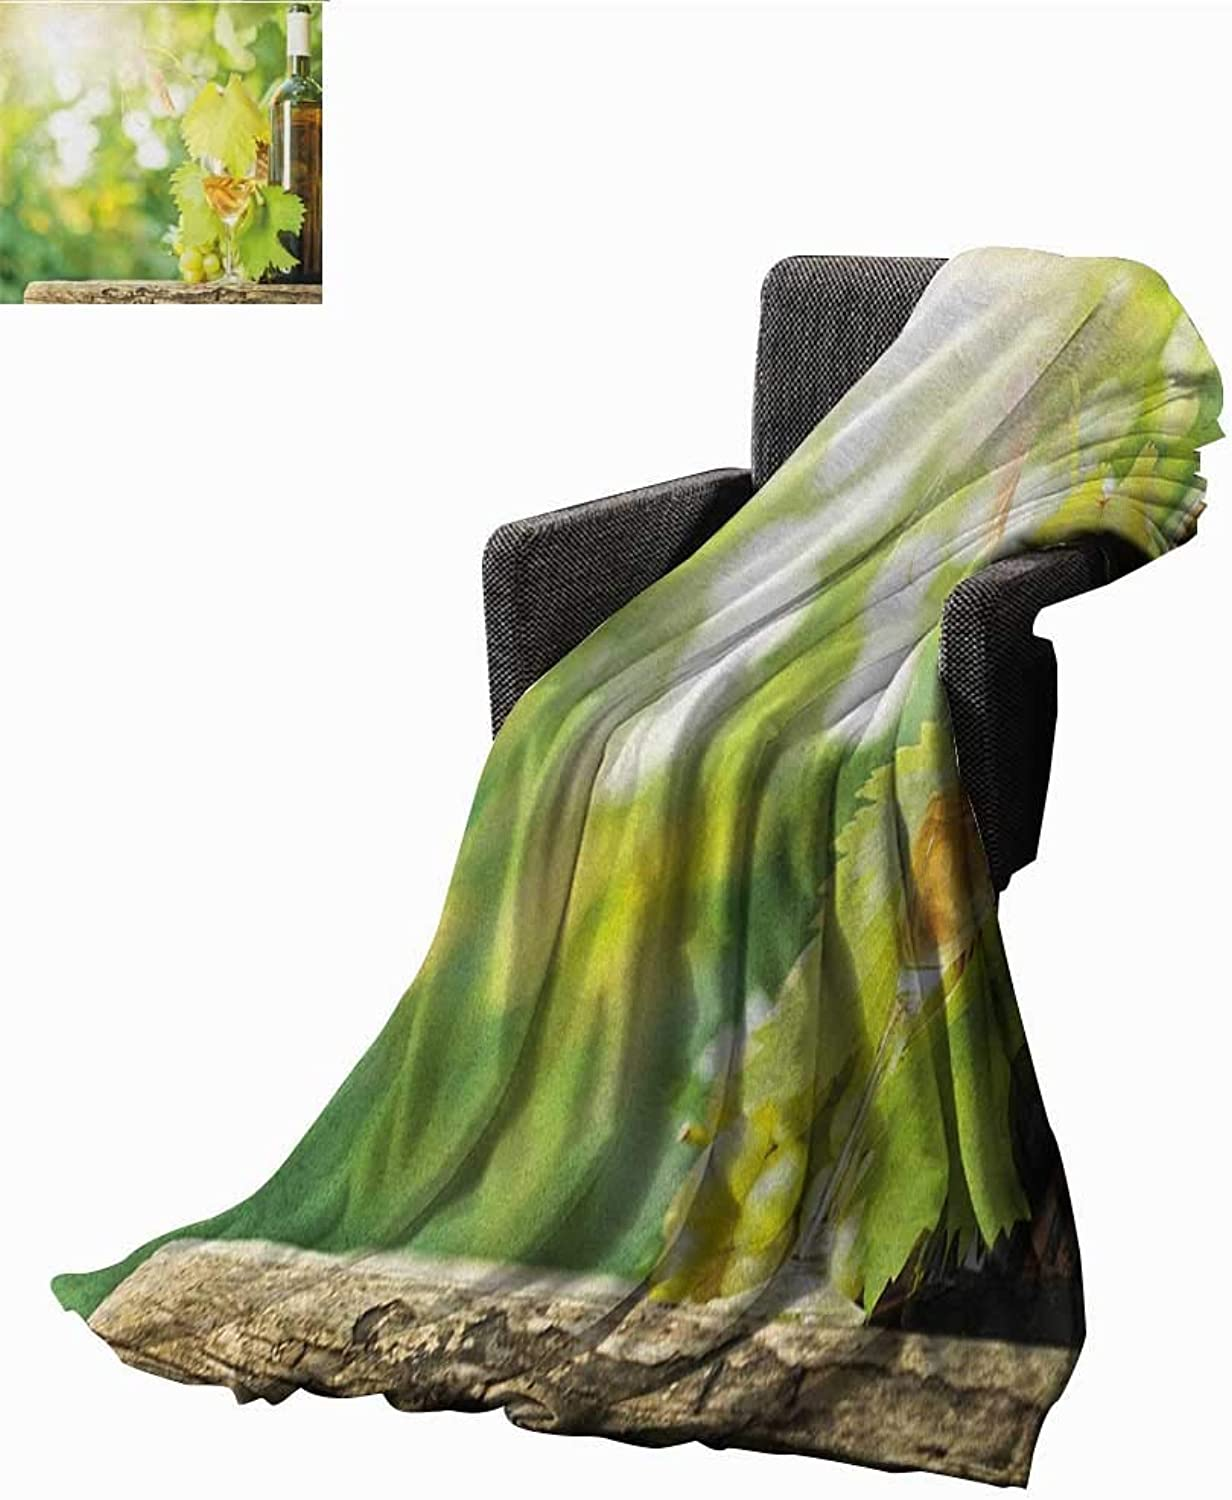 WilliamsDecor Bed or Couch 60  x 35 Wine Lightweight Blanket White Wine Bottle Glass Young Vine and Bunch of Grapes in Green Spring Print Summer Quilt Comforter Pale Green Yellow Brown